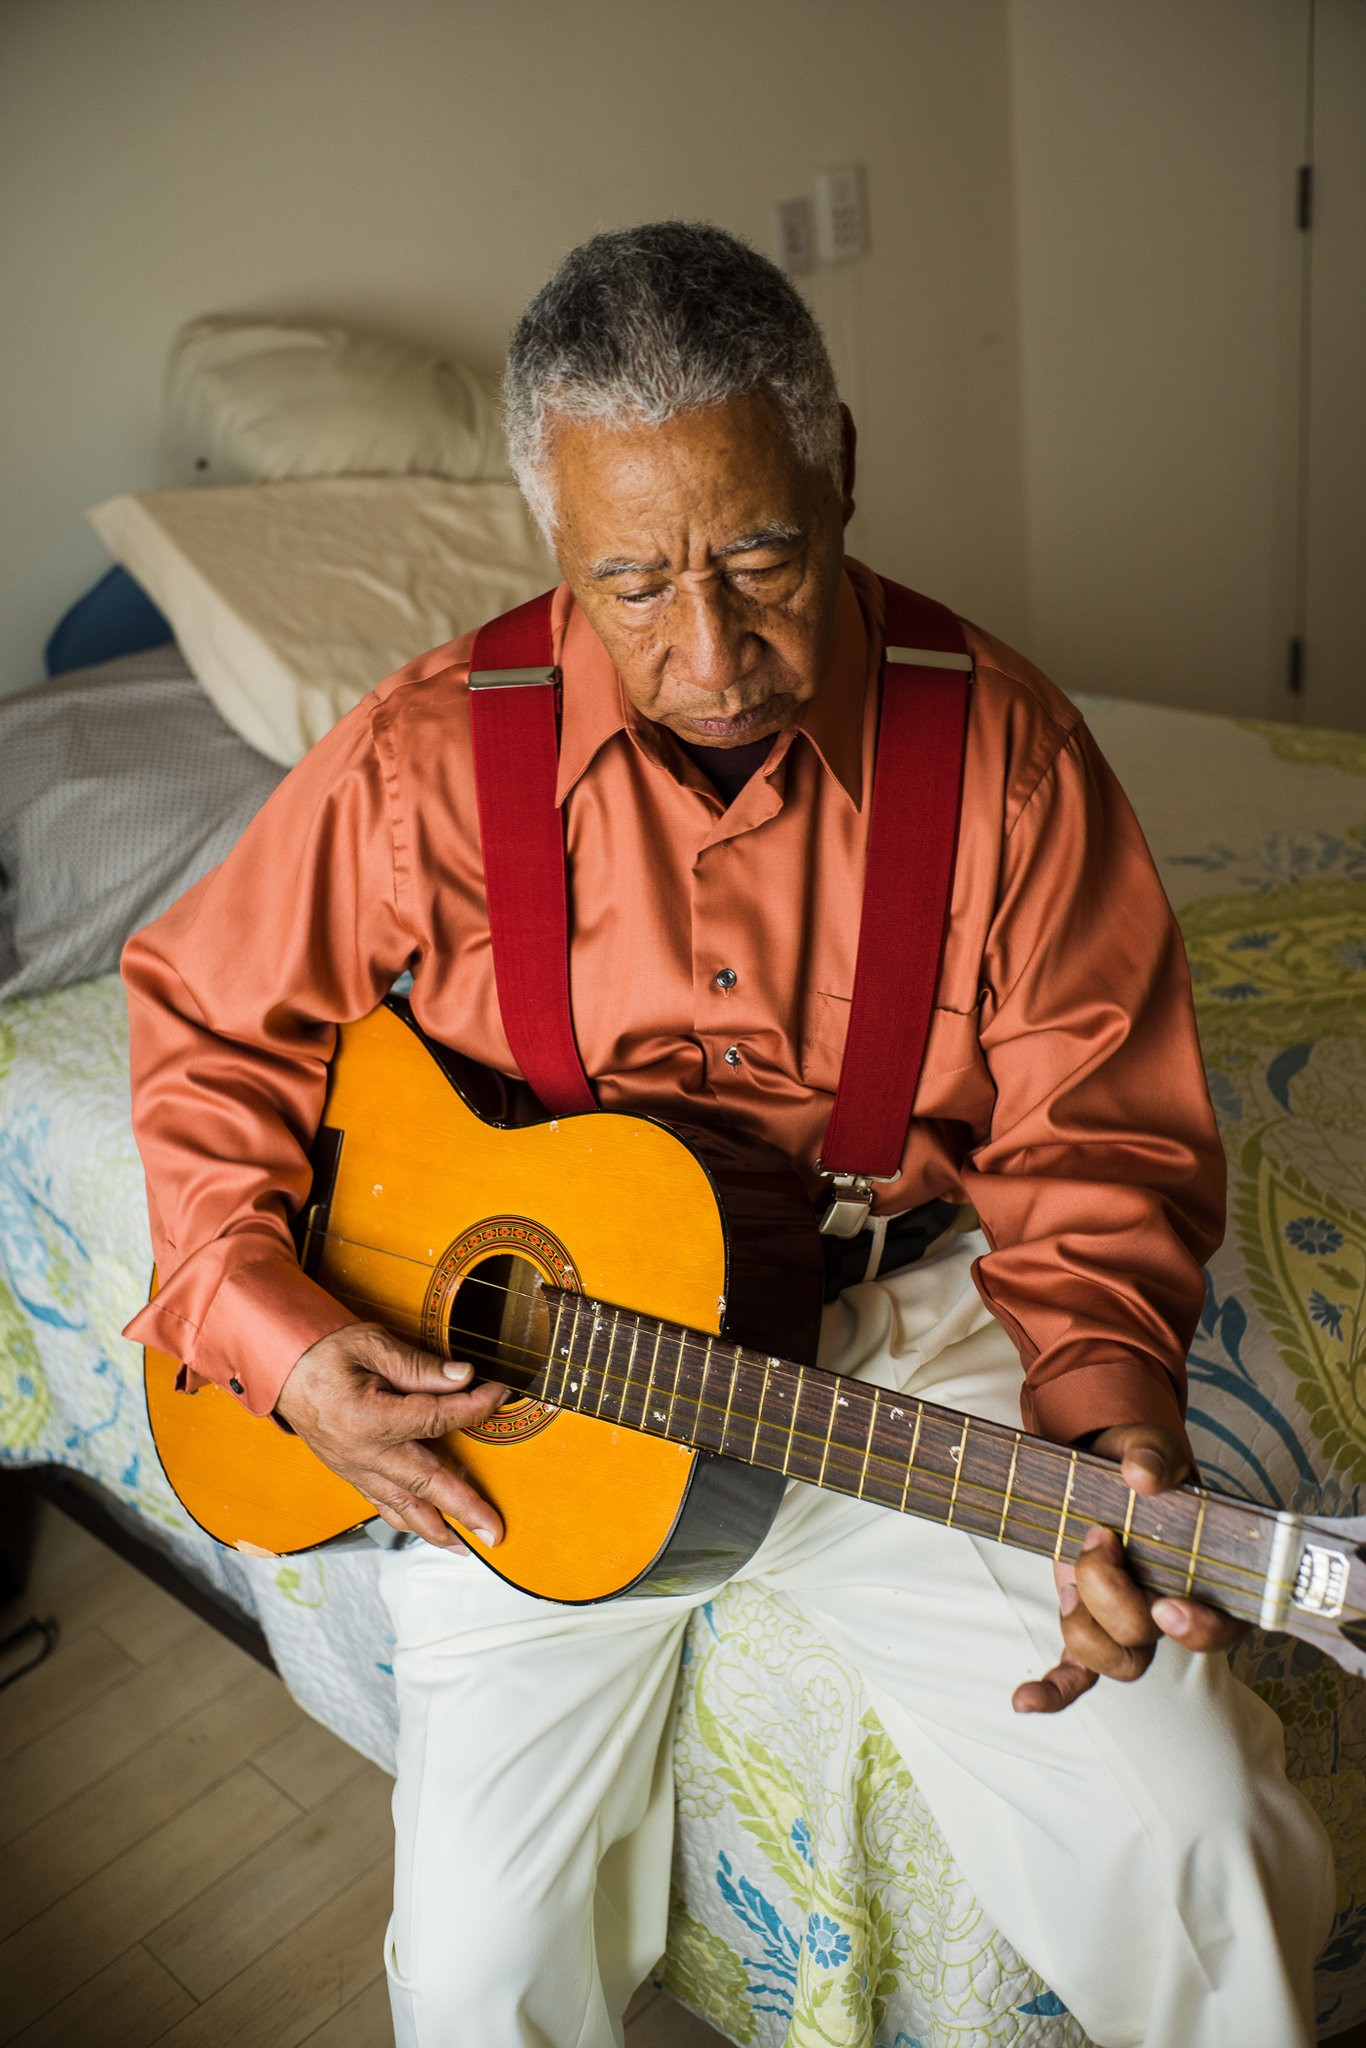 Olmedini strumming a guitar in his apartment in a housing complex for the disabled in East Harlem. credit: Jaime Permuth